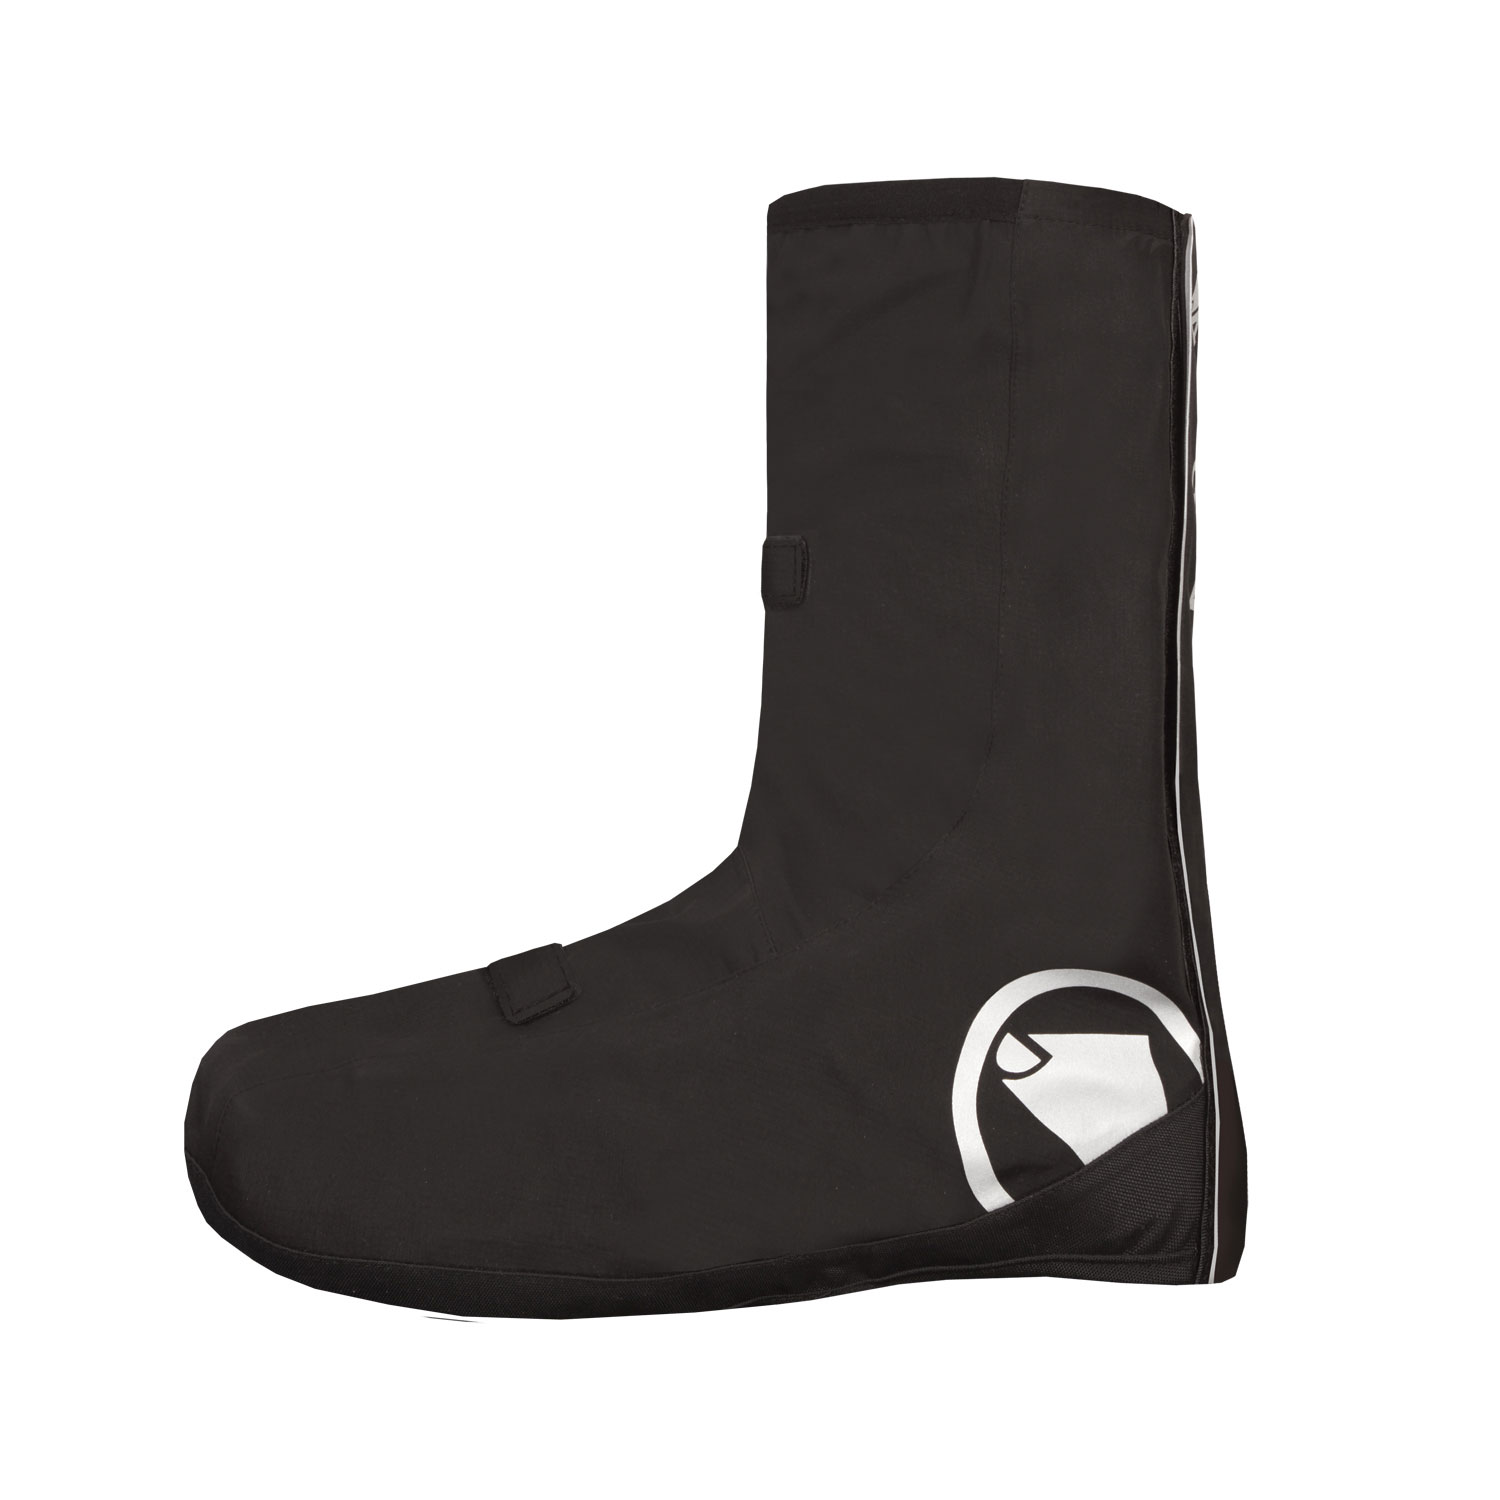 Endura Waterproof Gaiter Overshoe $50